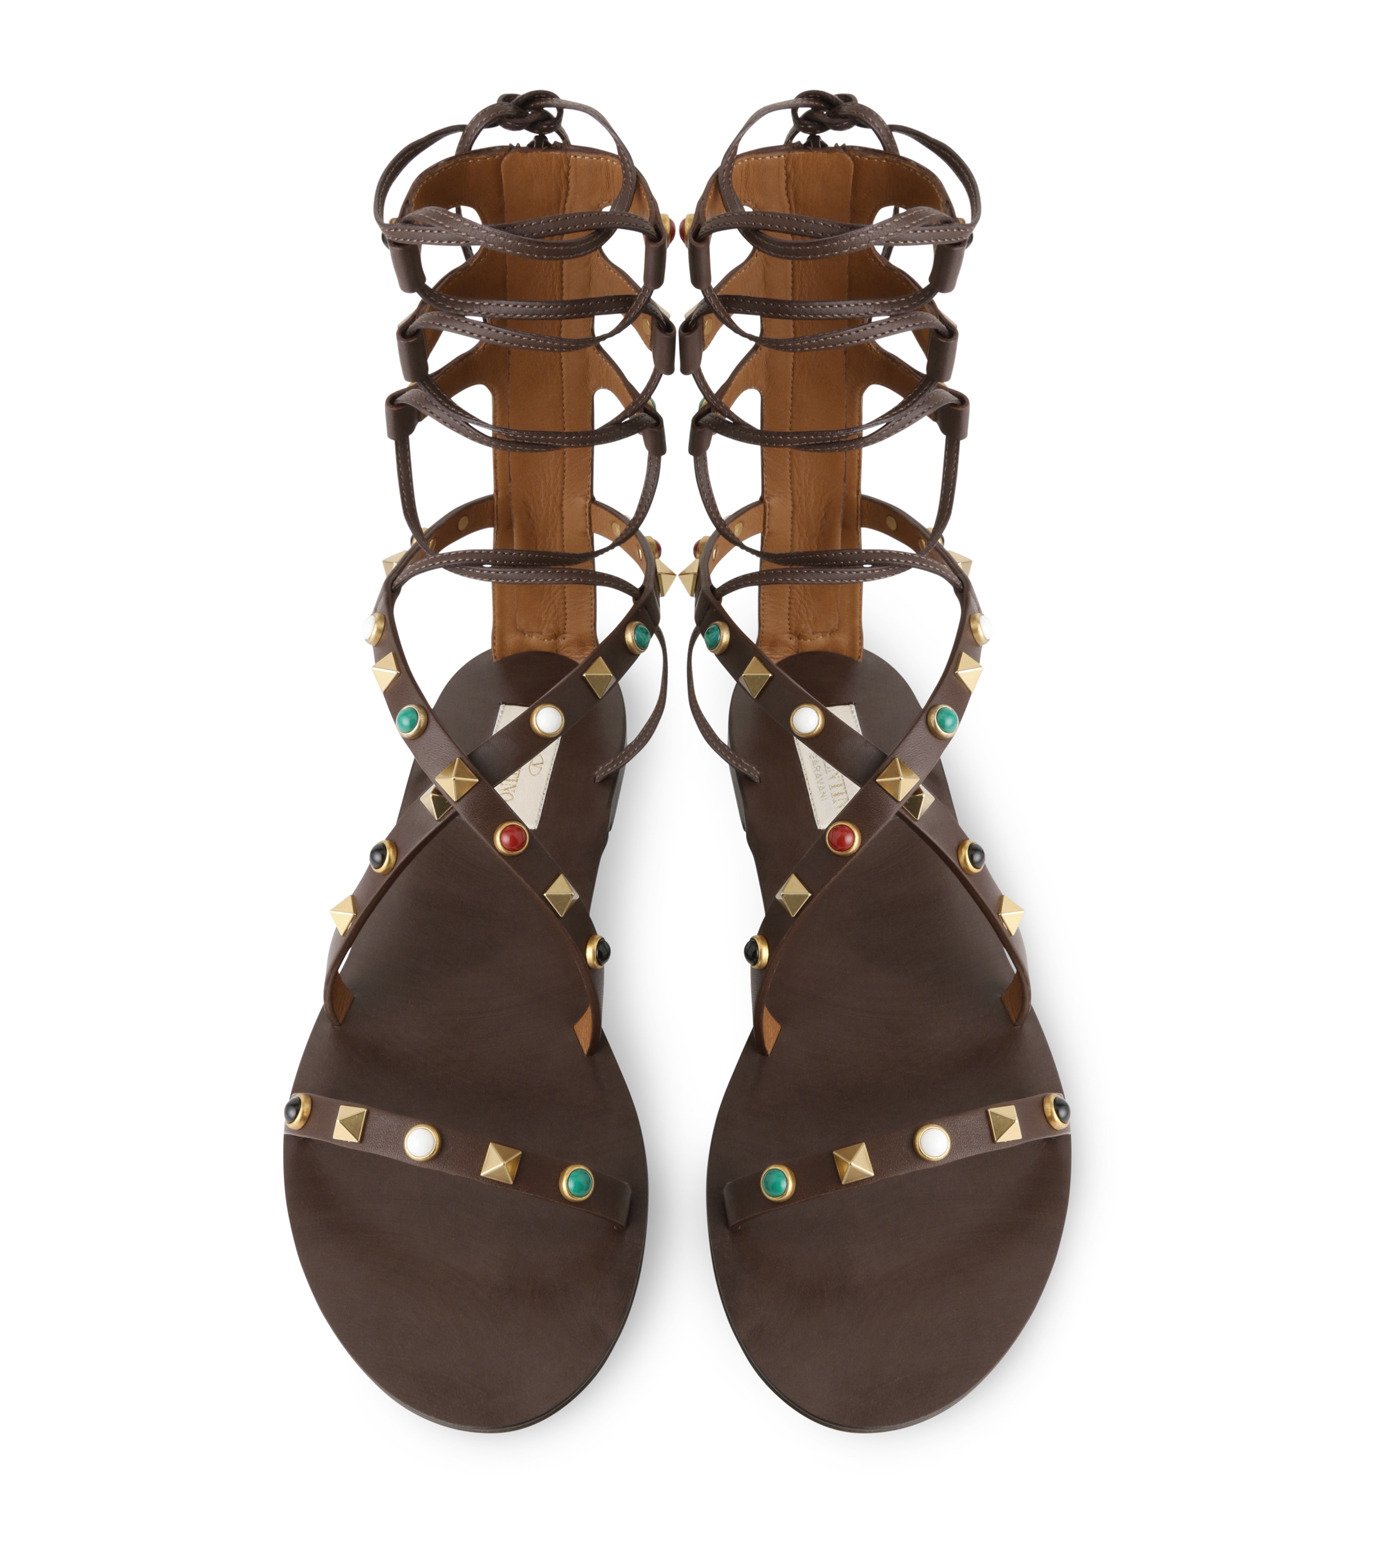 VALENTINO(ヴァレンティノ)のRockstuds Lace Up Flat Multi-BROWN(フラットシューズ/Flat shoes)-KW0S0021VQM-42 拡大詳細画像4